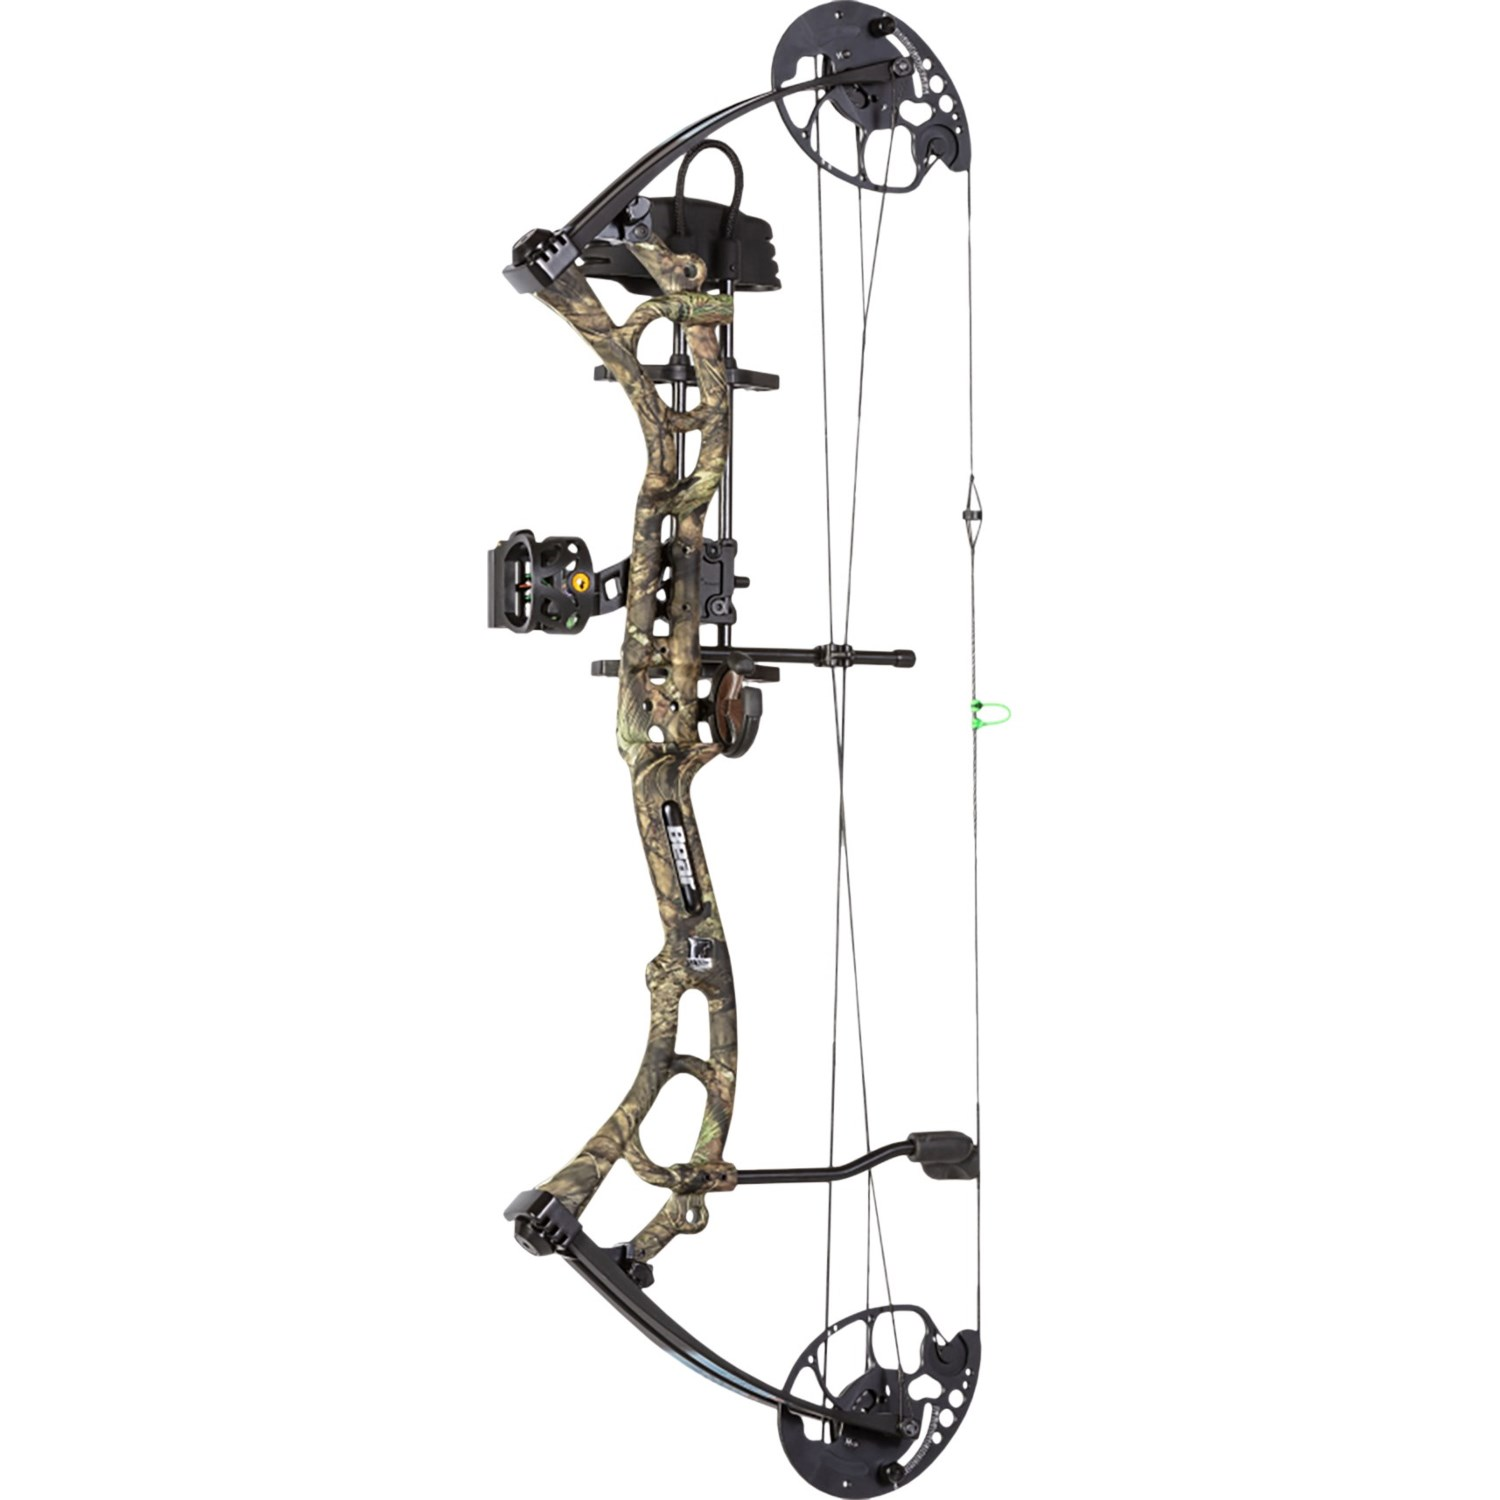 Bear Archery Salute RTH Compound Bow - 50-70 lb  Draw Weight